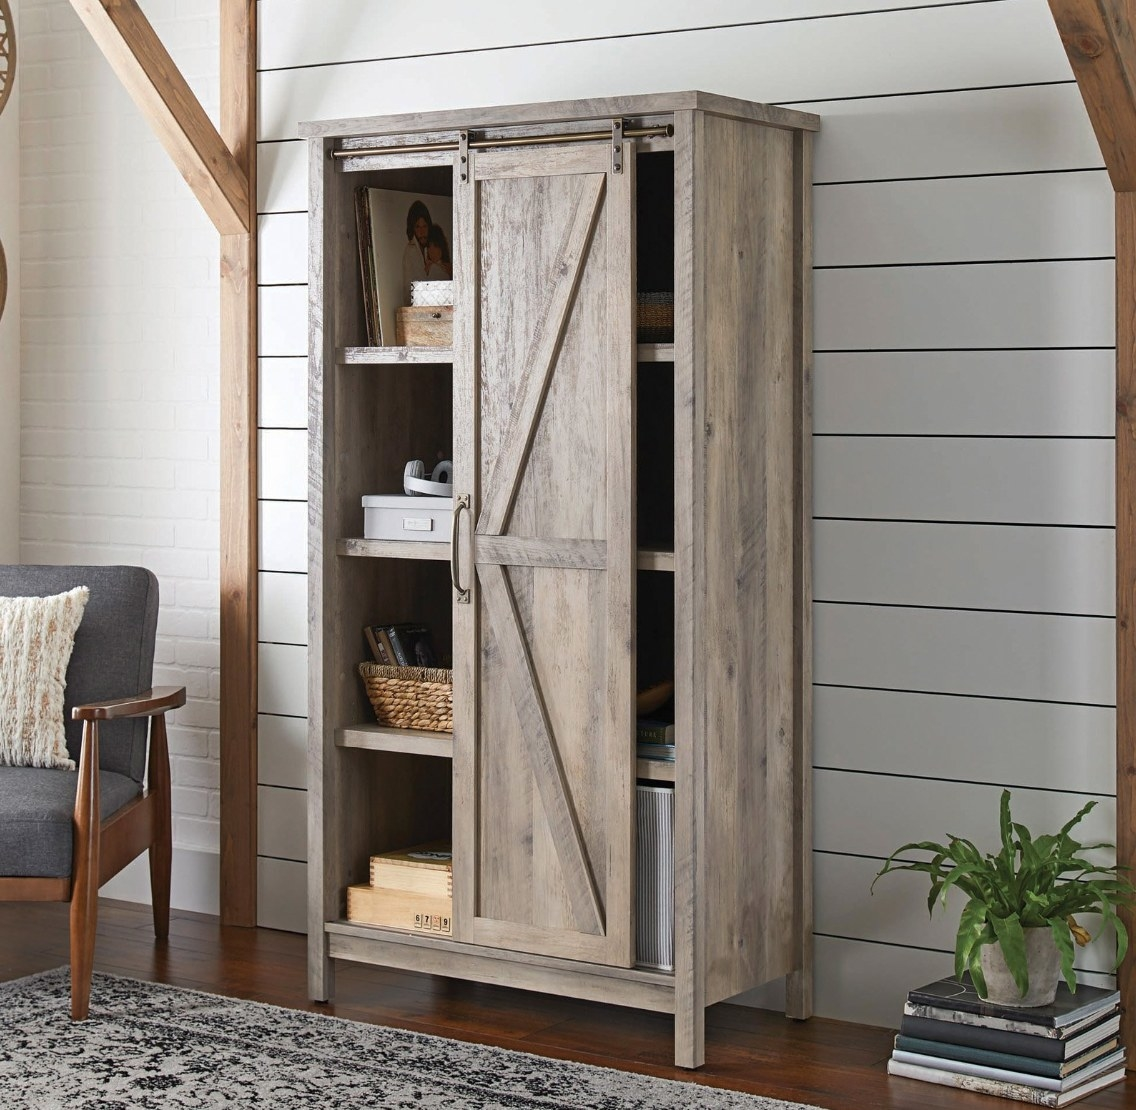 The bookcase storage cabinet in rustic gray